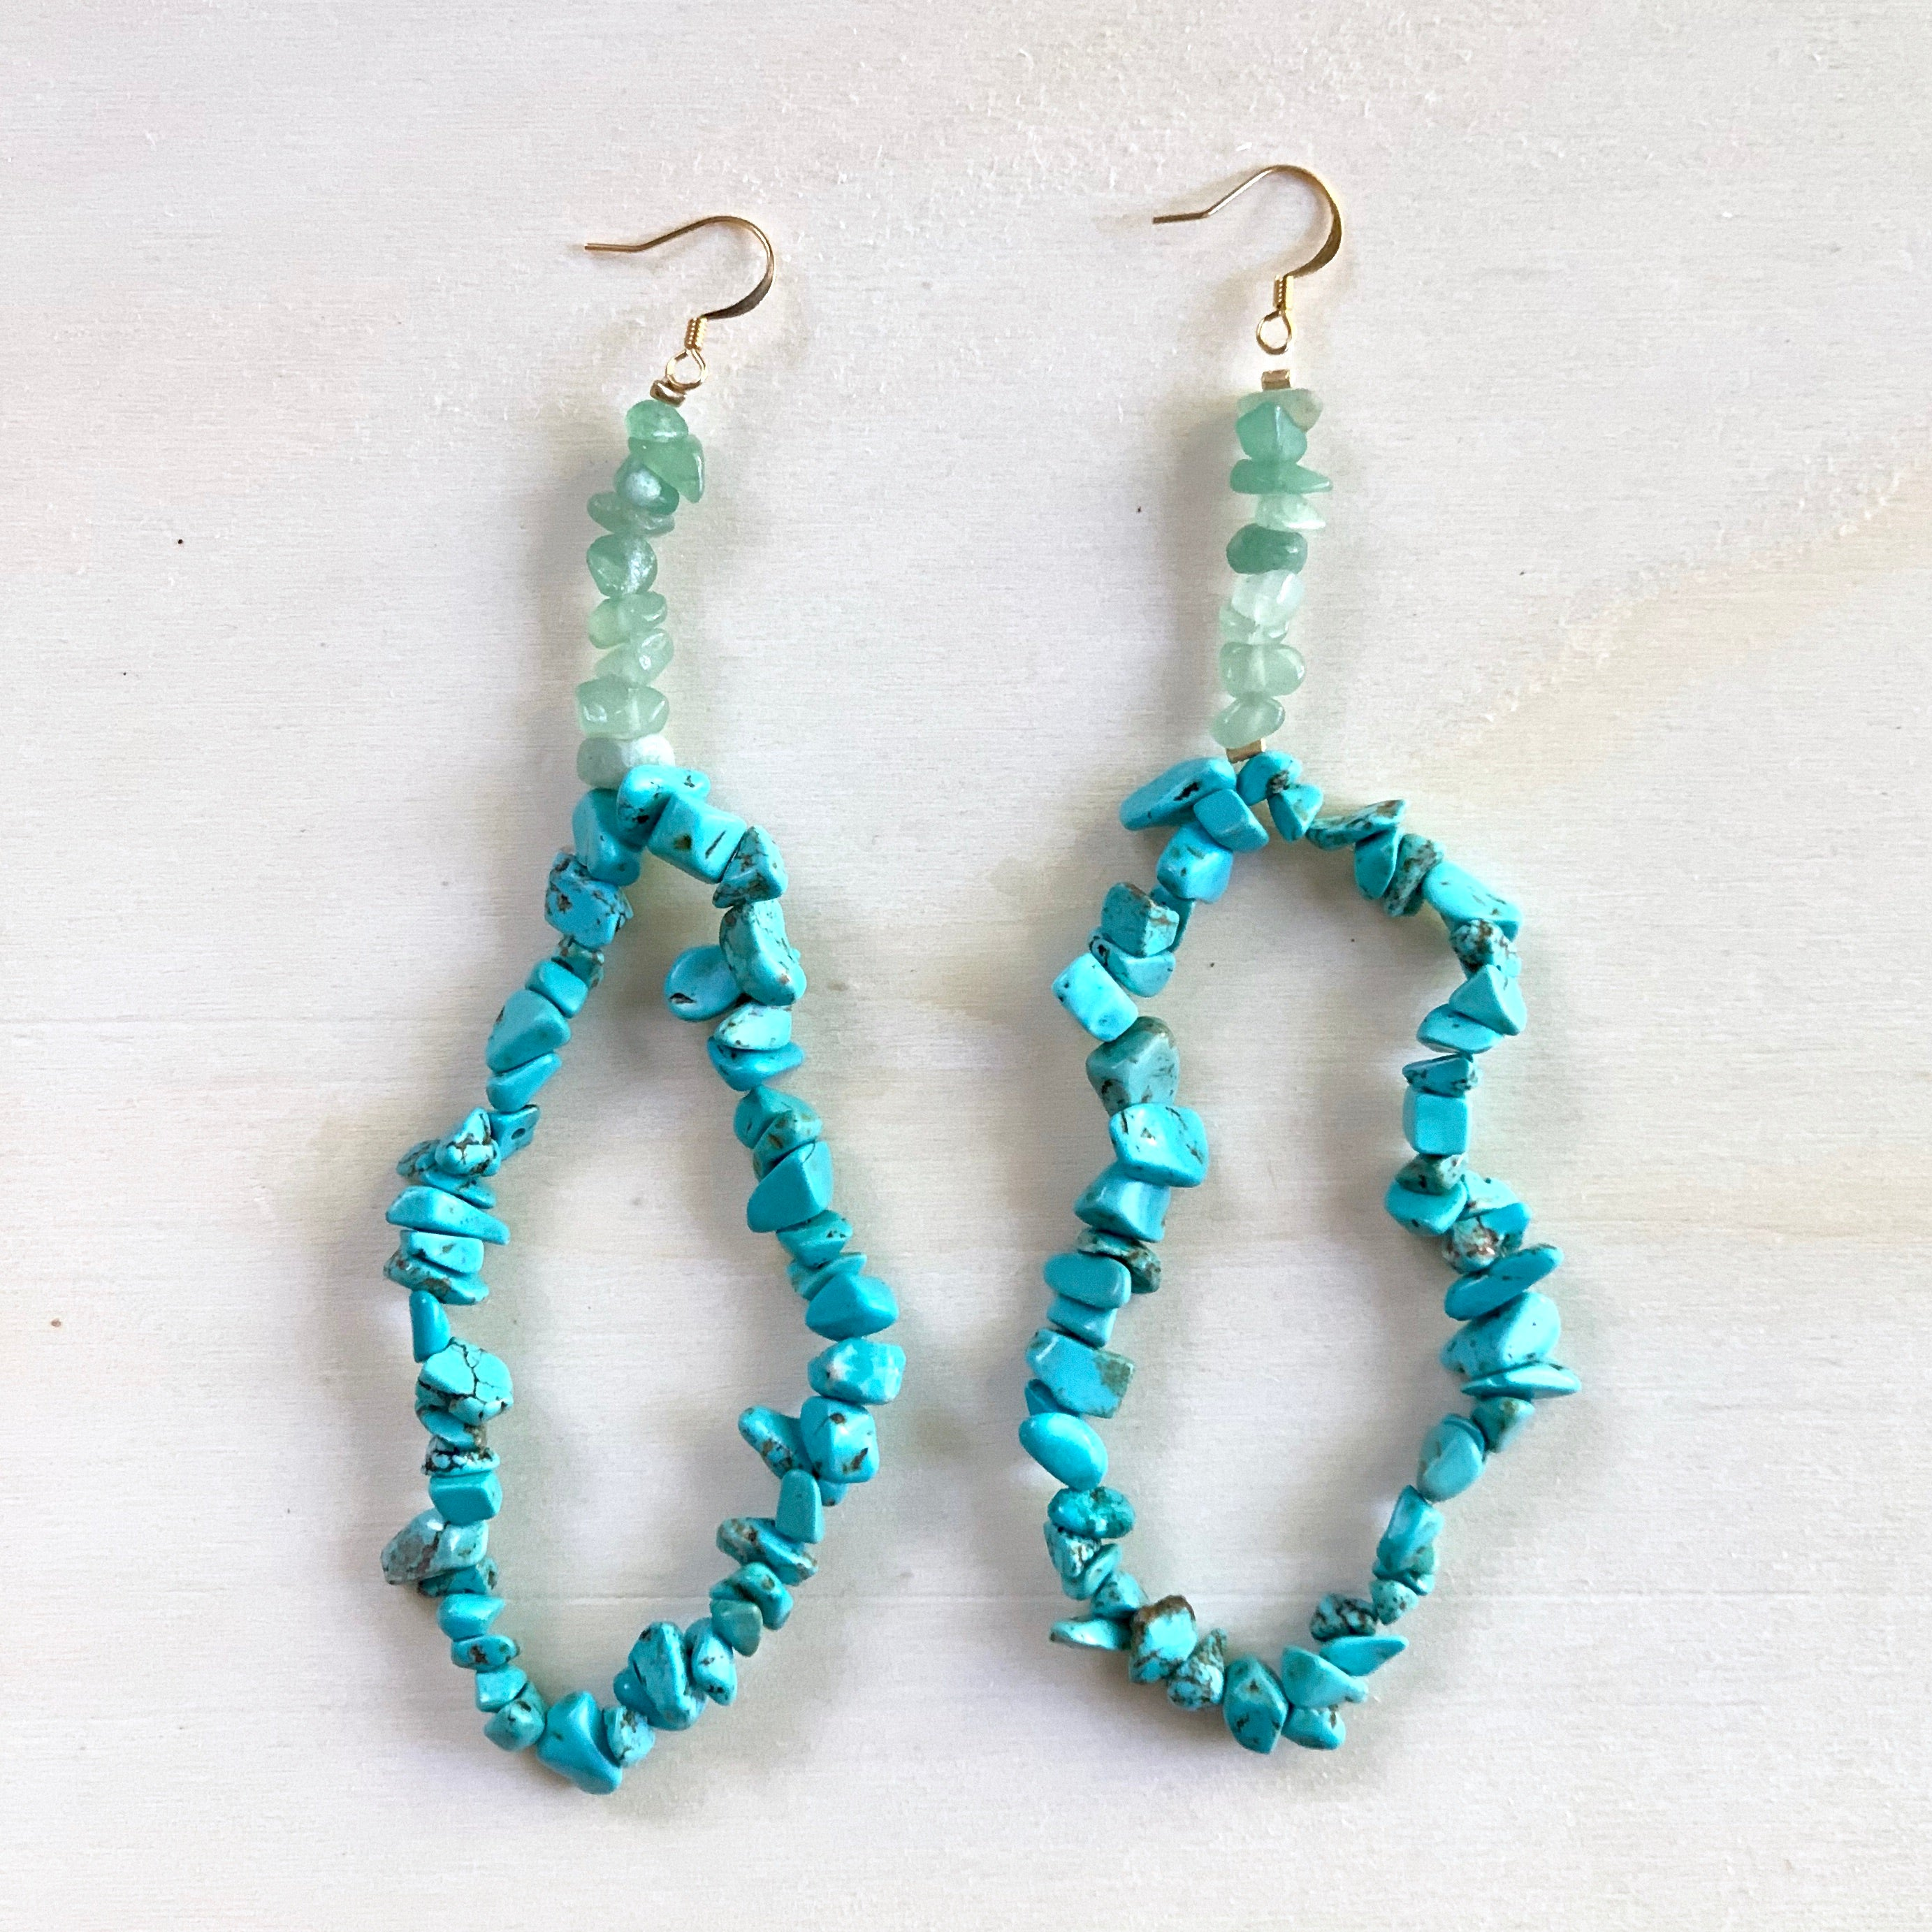 Avalanche Turquoise Hoop Earrings